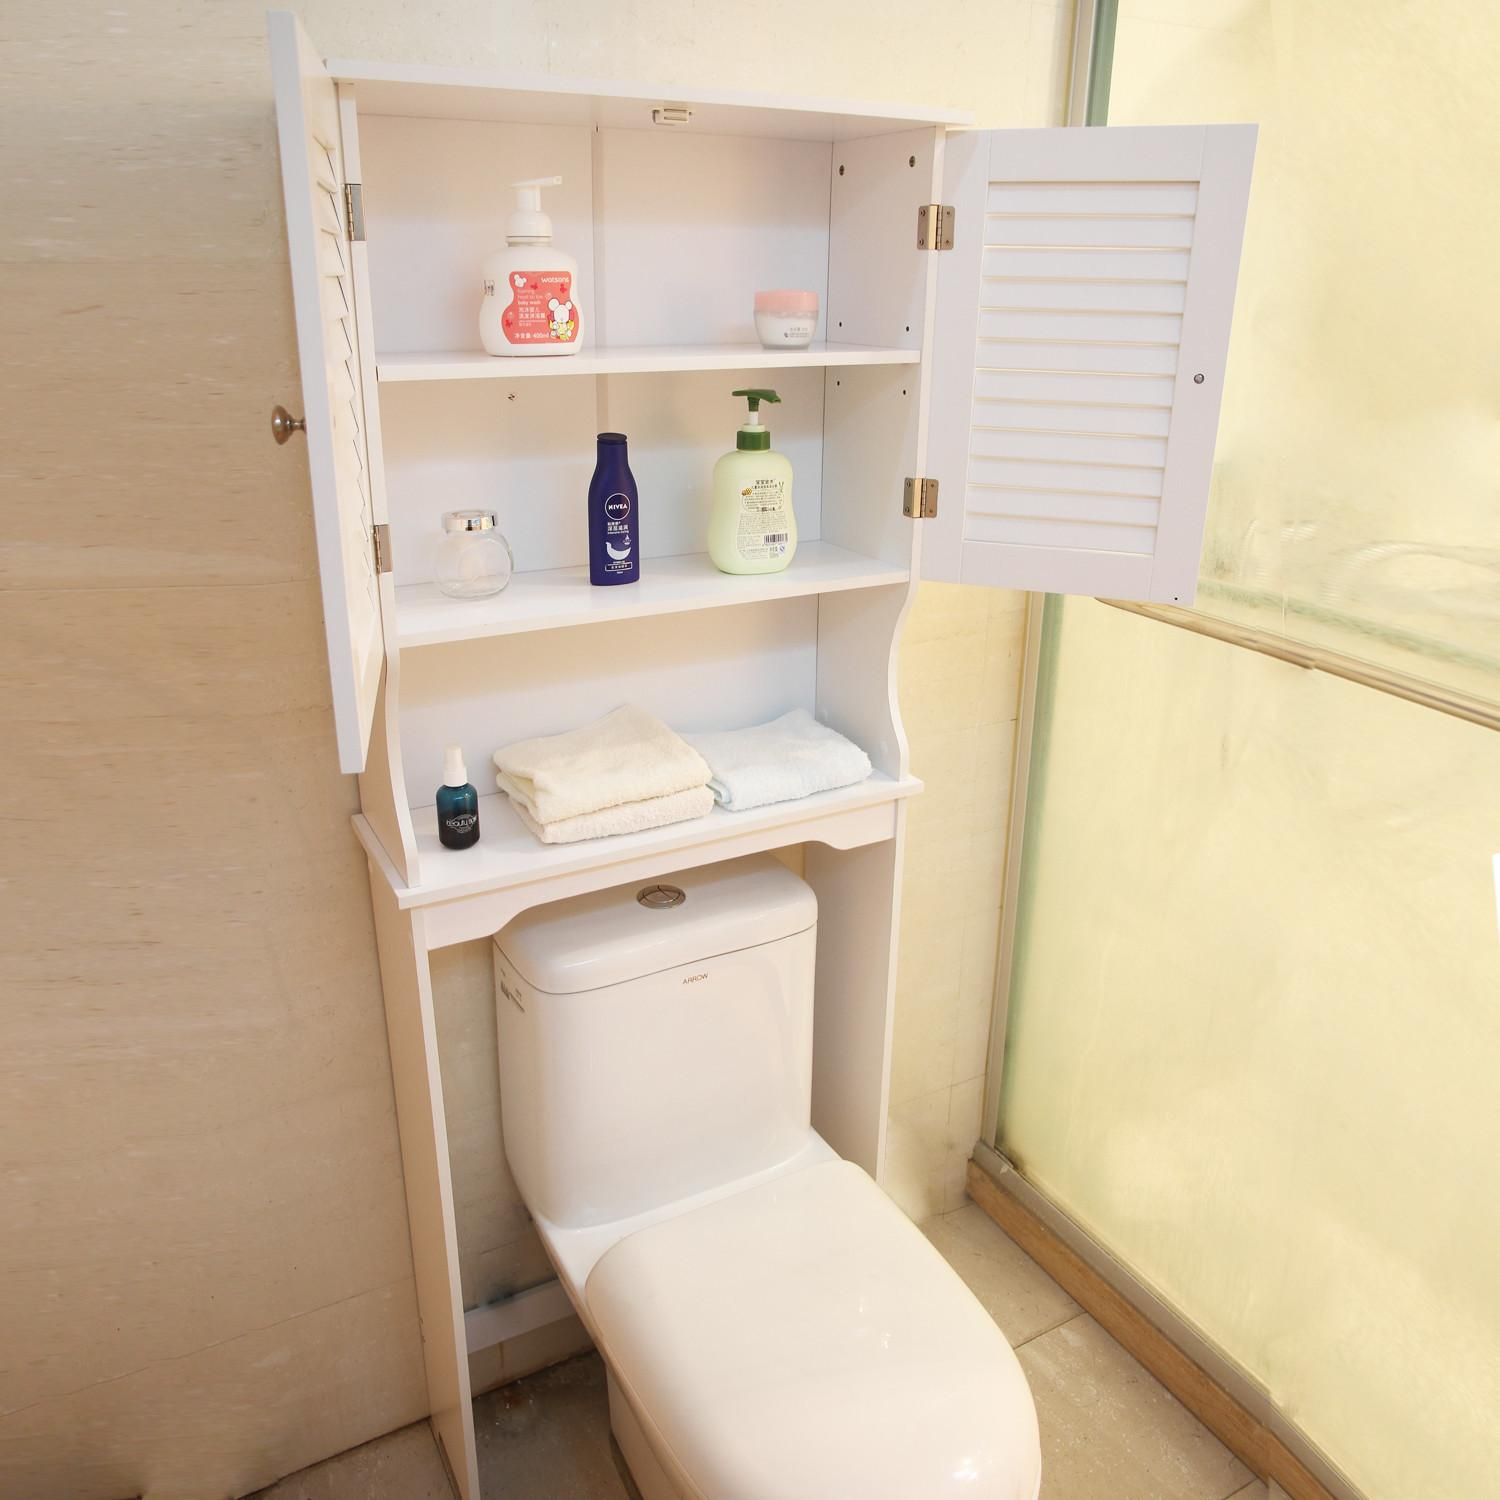 Shutter Doors White Wooden Bath Cabinet Shelf